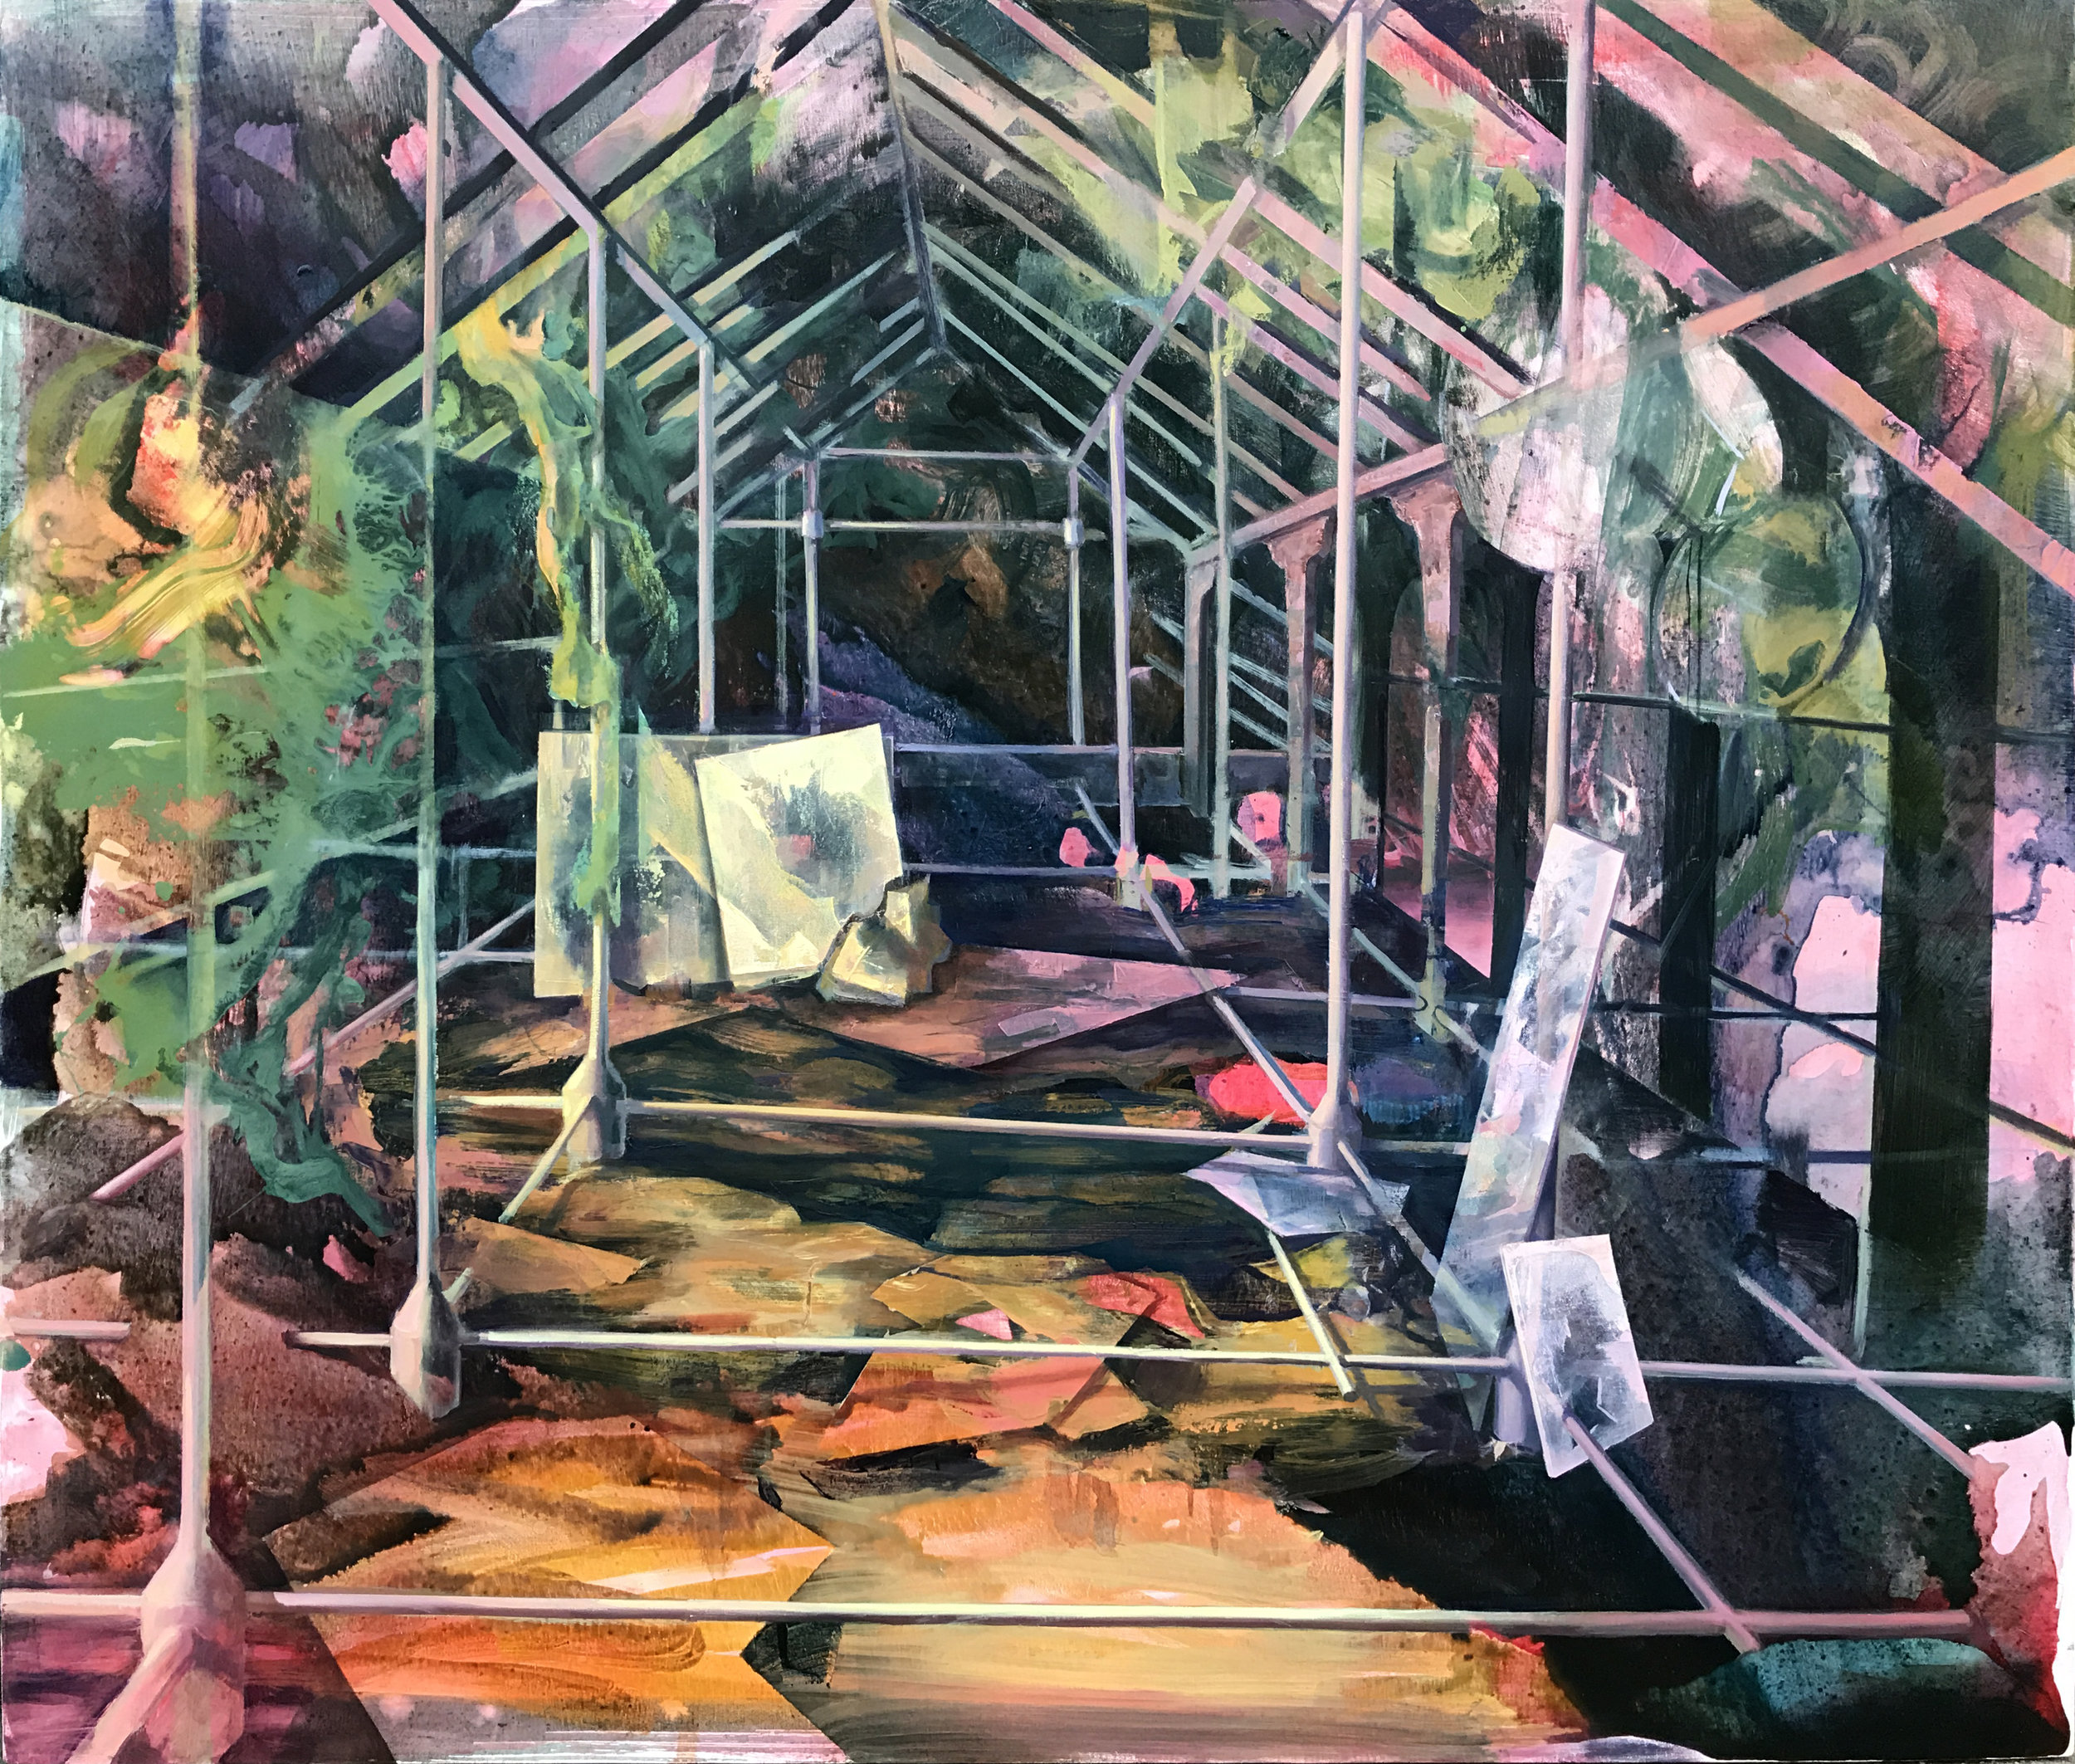 Greenhouse , 2017, Ink acrylic and oil on canvas, 44 x 56 inches